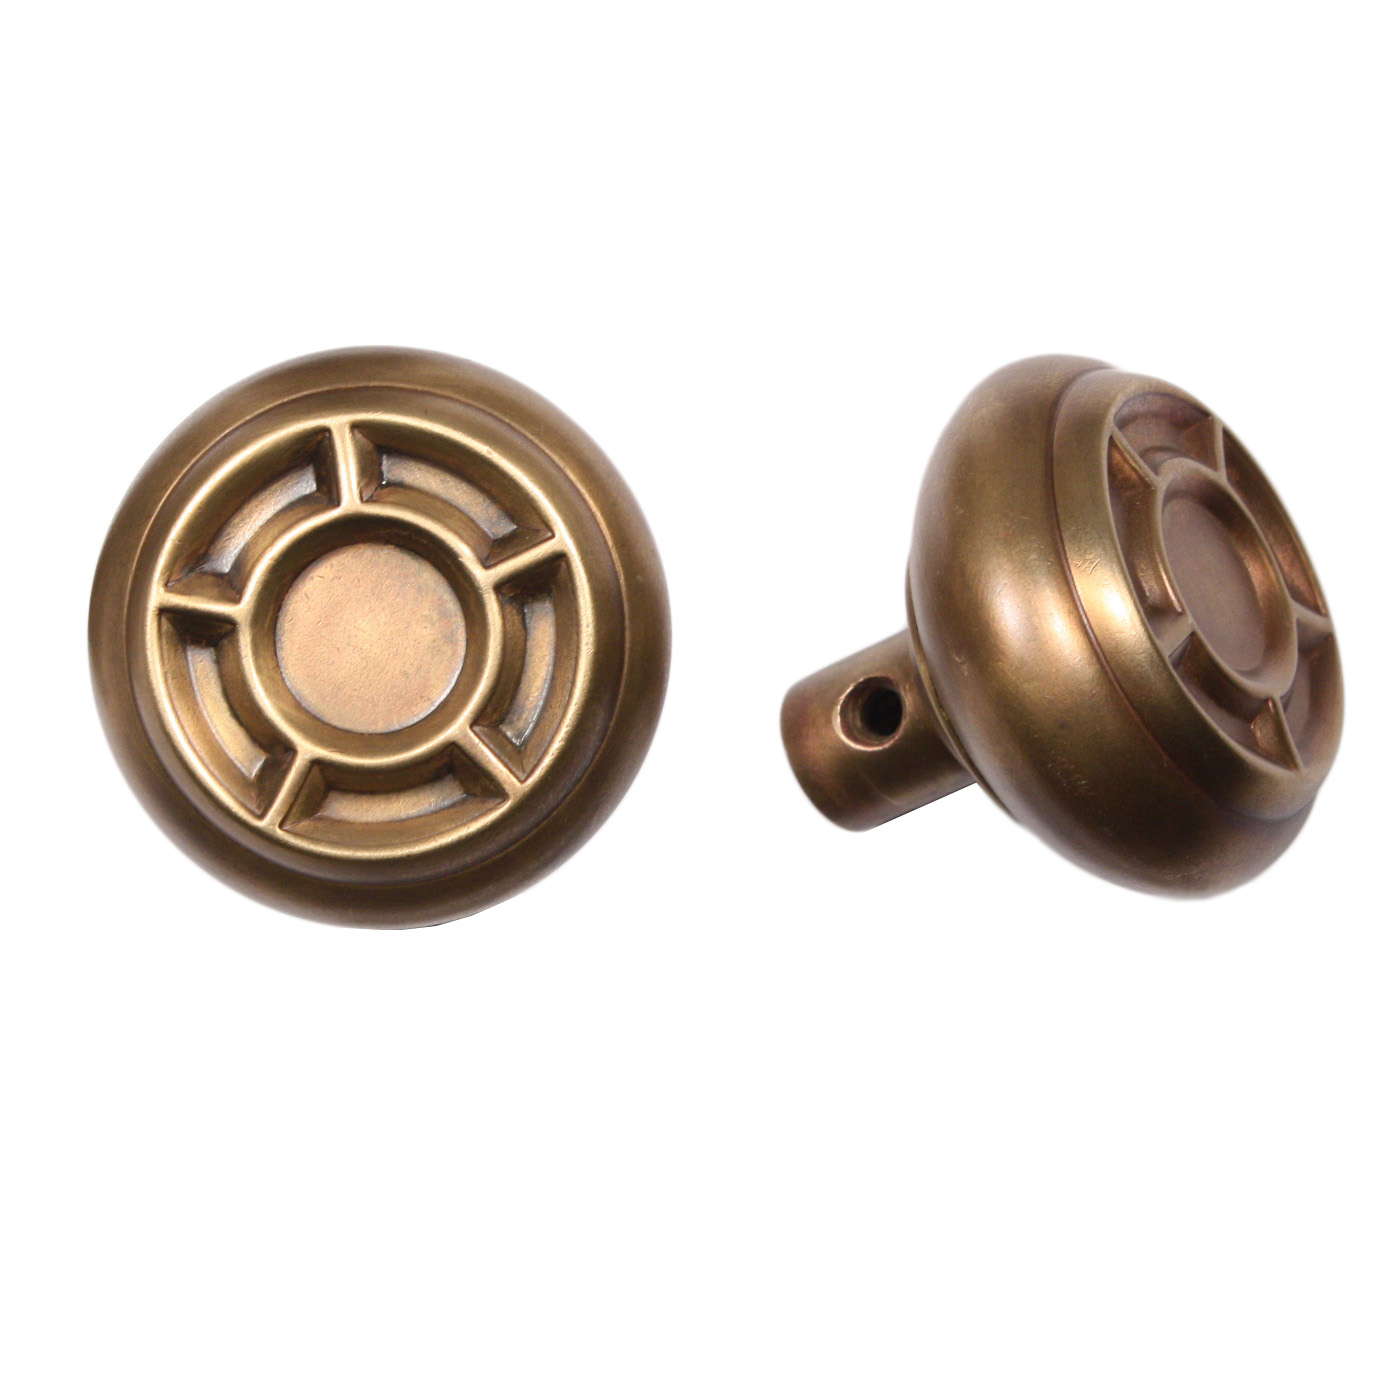 An Unusual Antique Brass Arts U0026 Crafts Door Exterior Hardware Set, Dating  From The Early 1900u0027s. The Set Includes The Doorknobs With The Connecting  Rod And ...